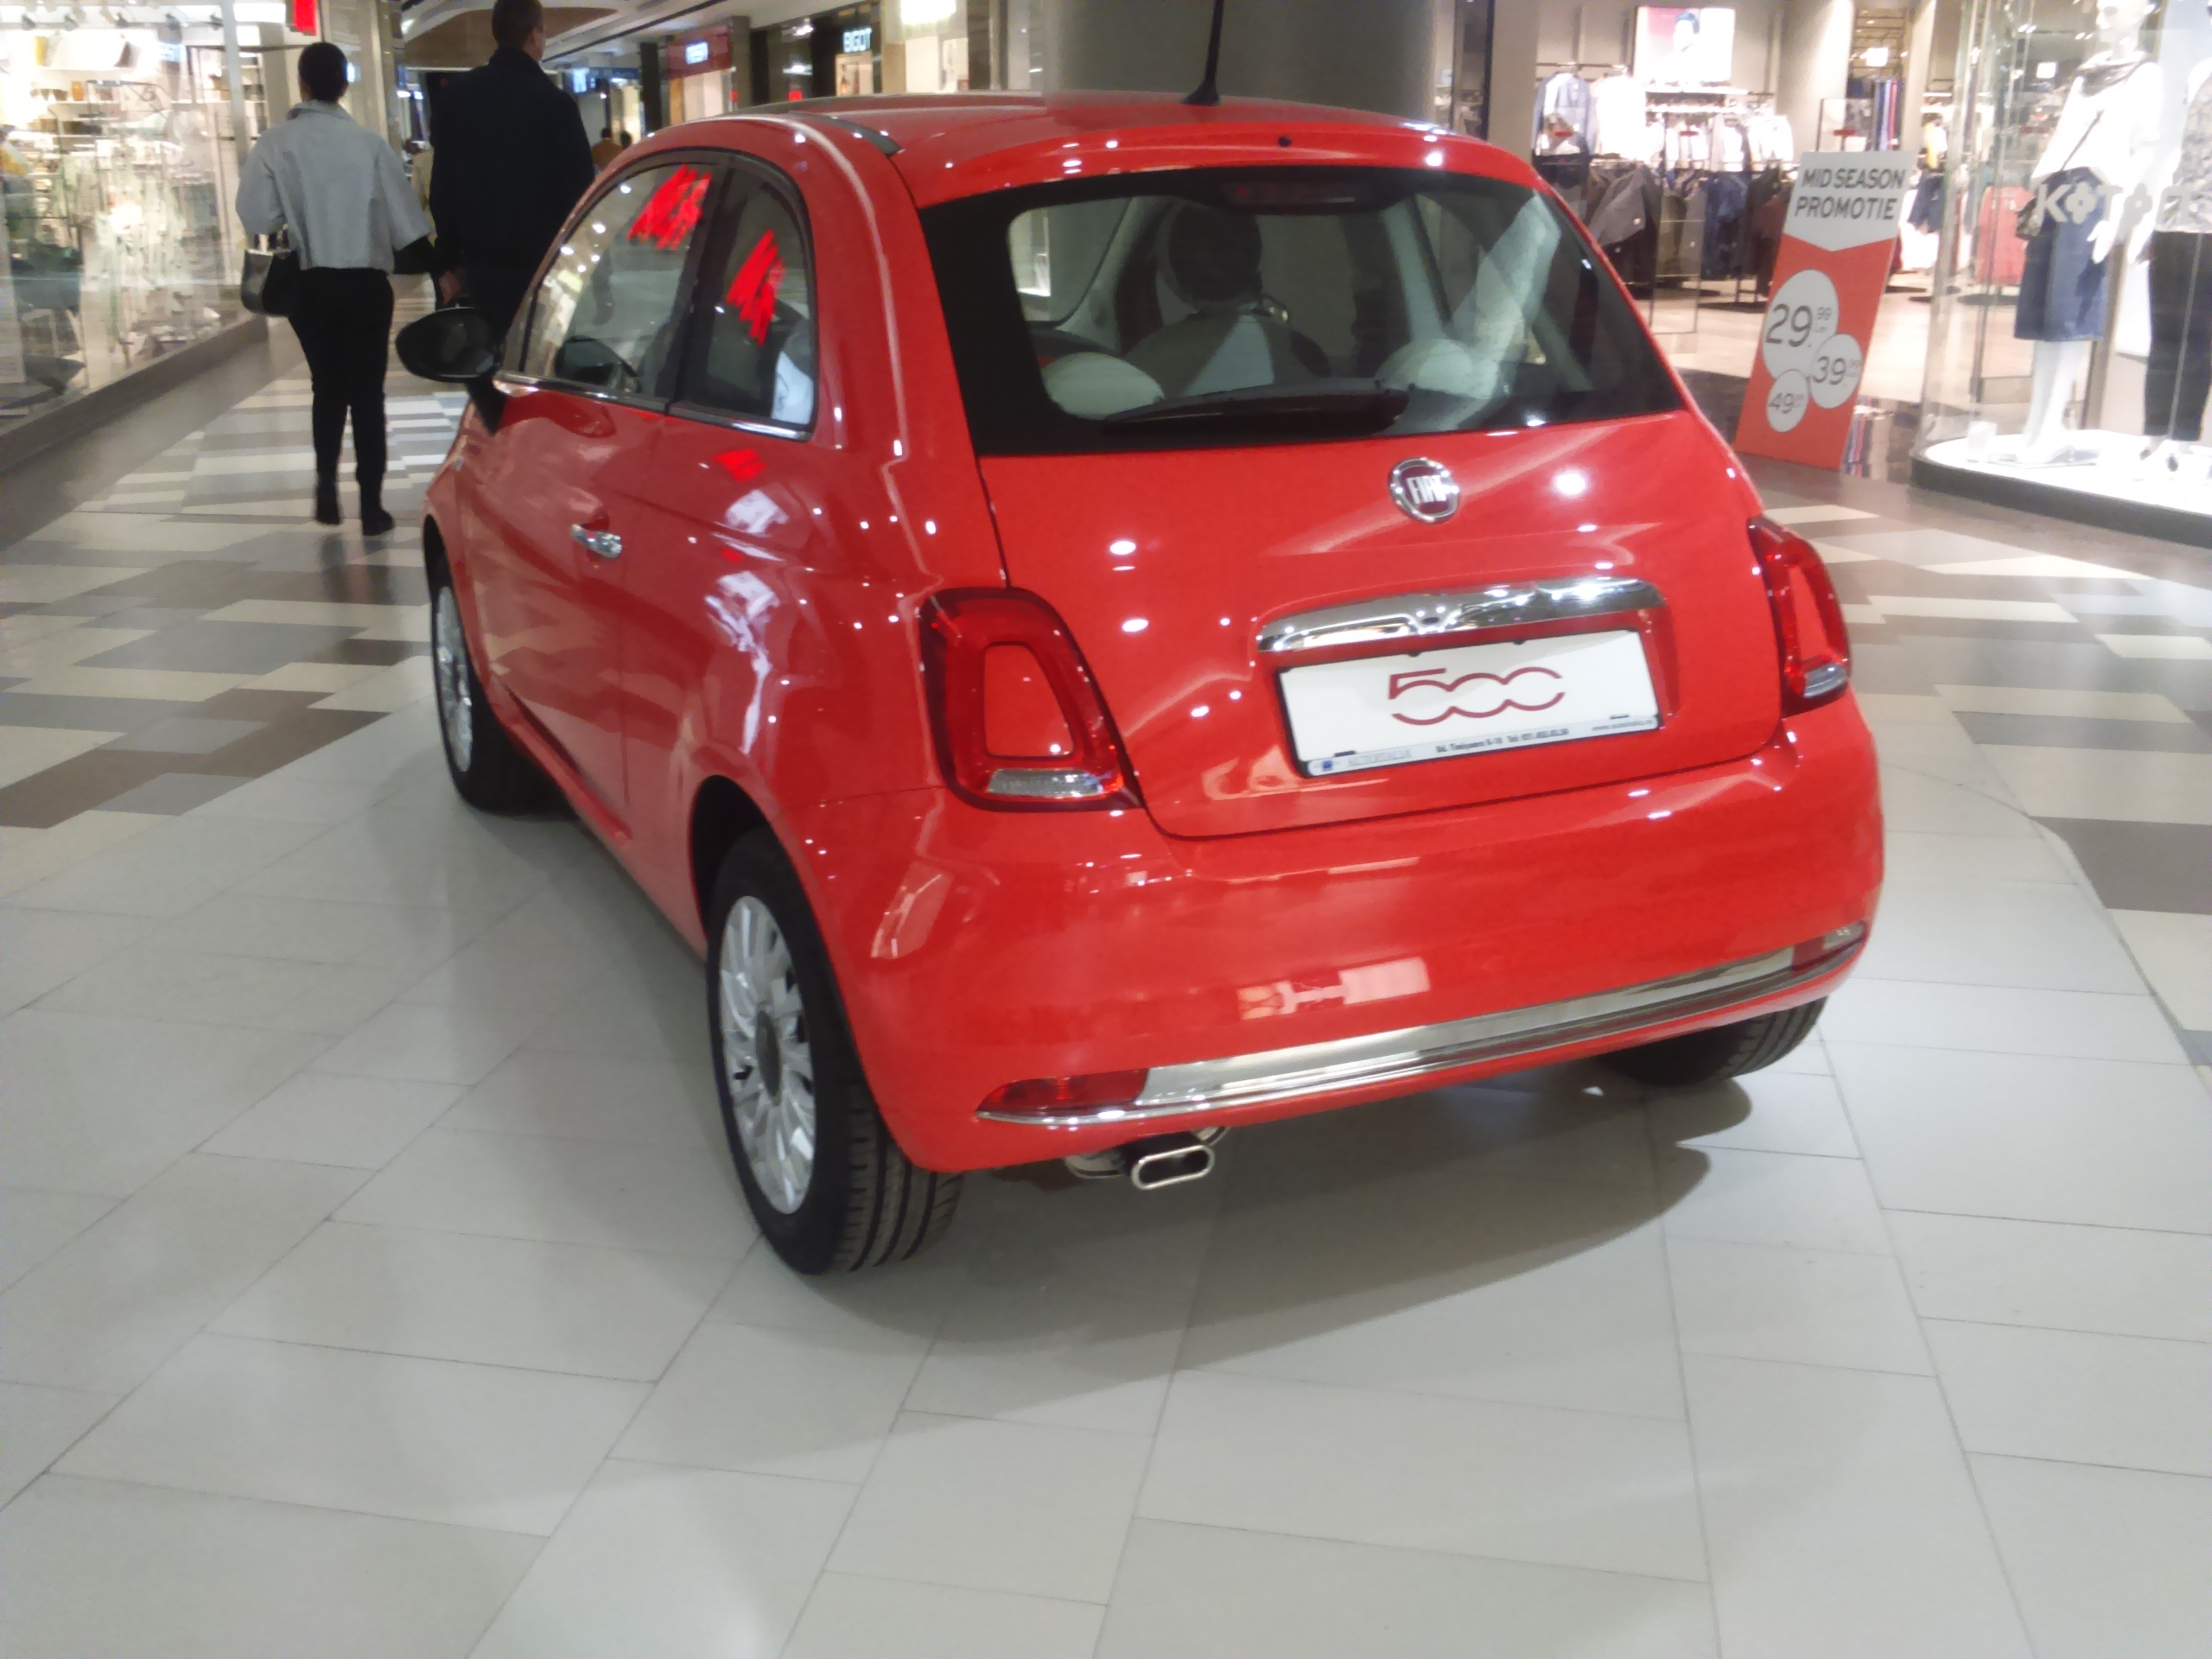 official is it s usa fiat its back